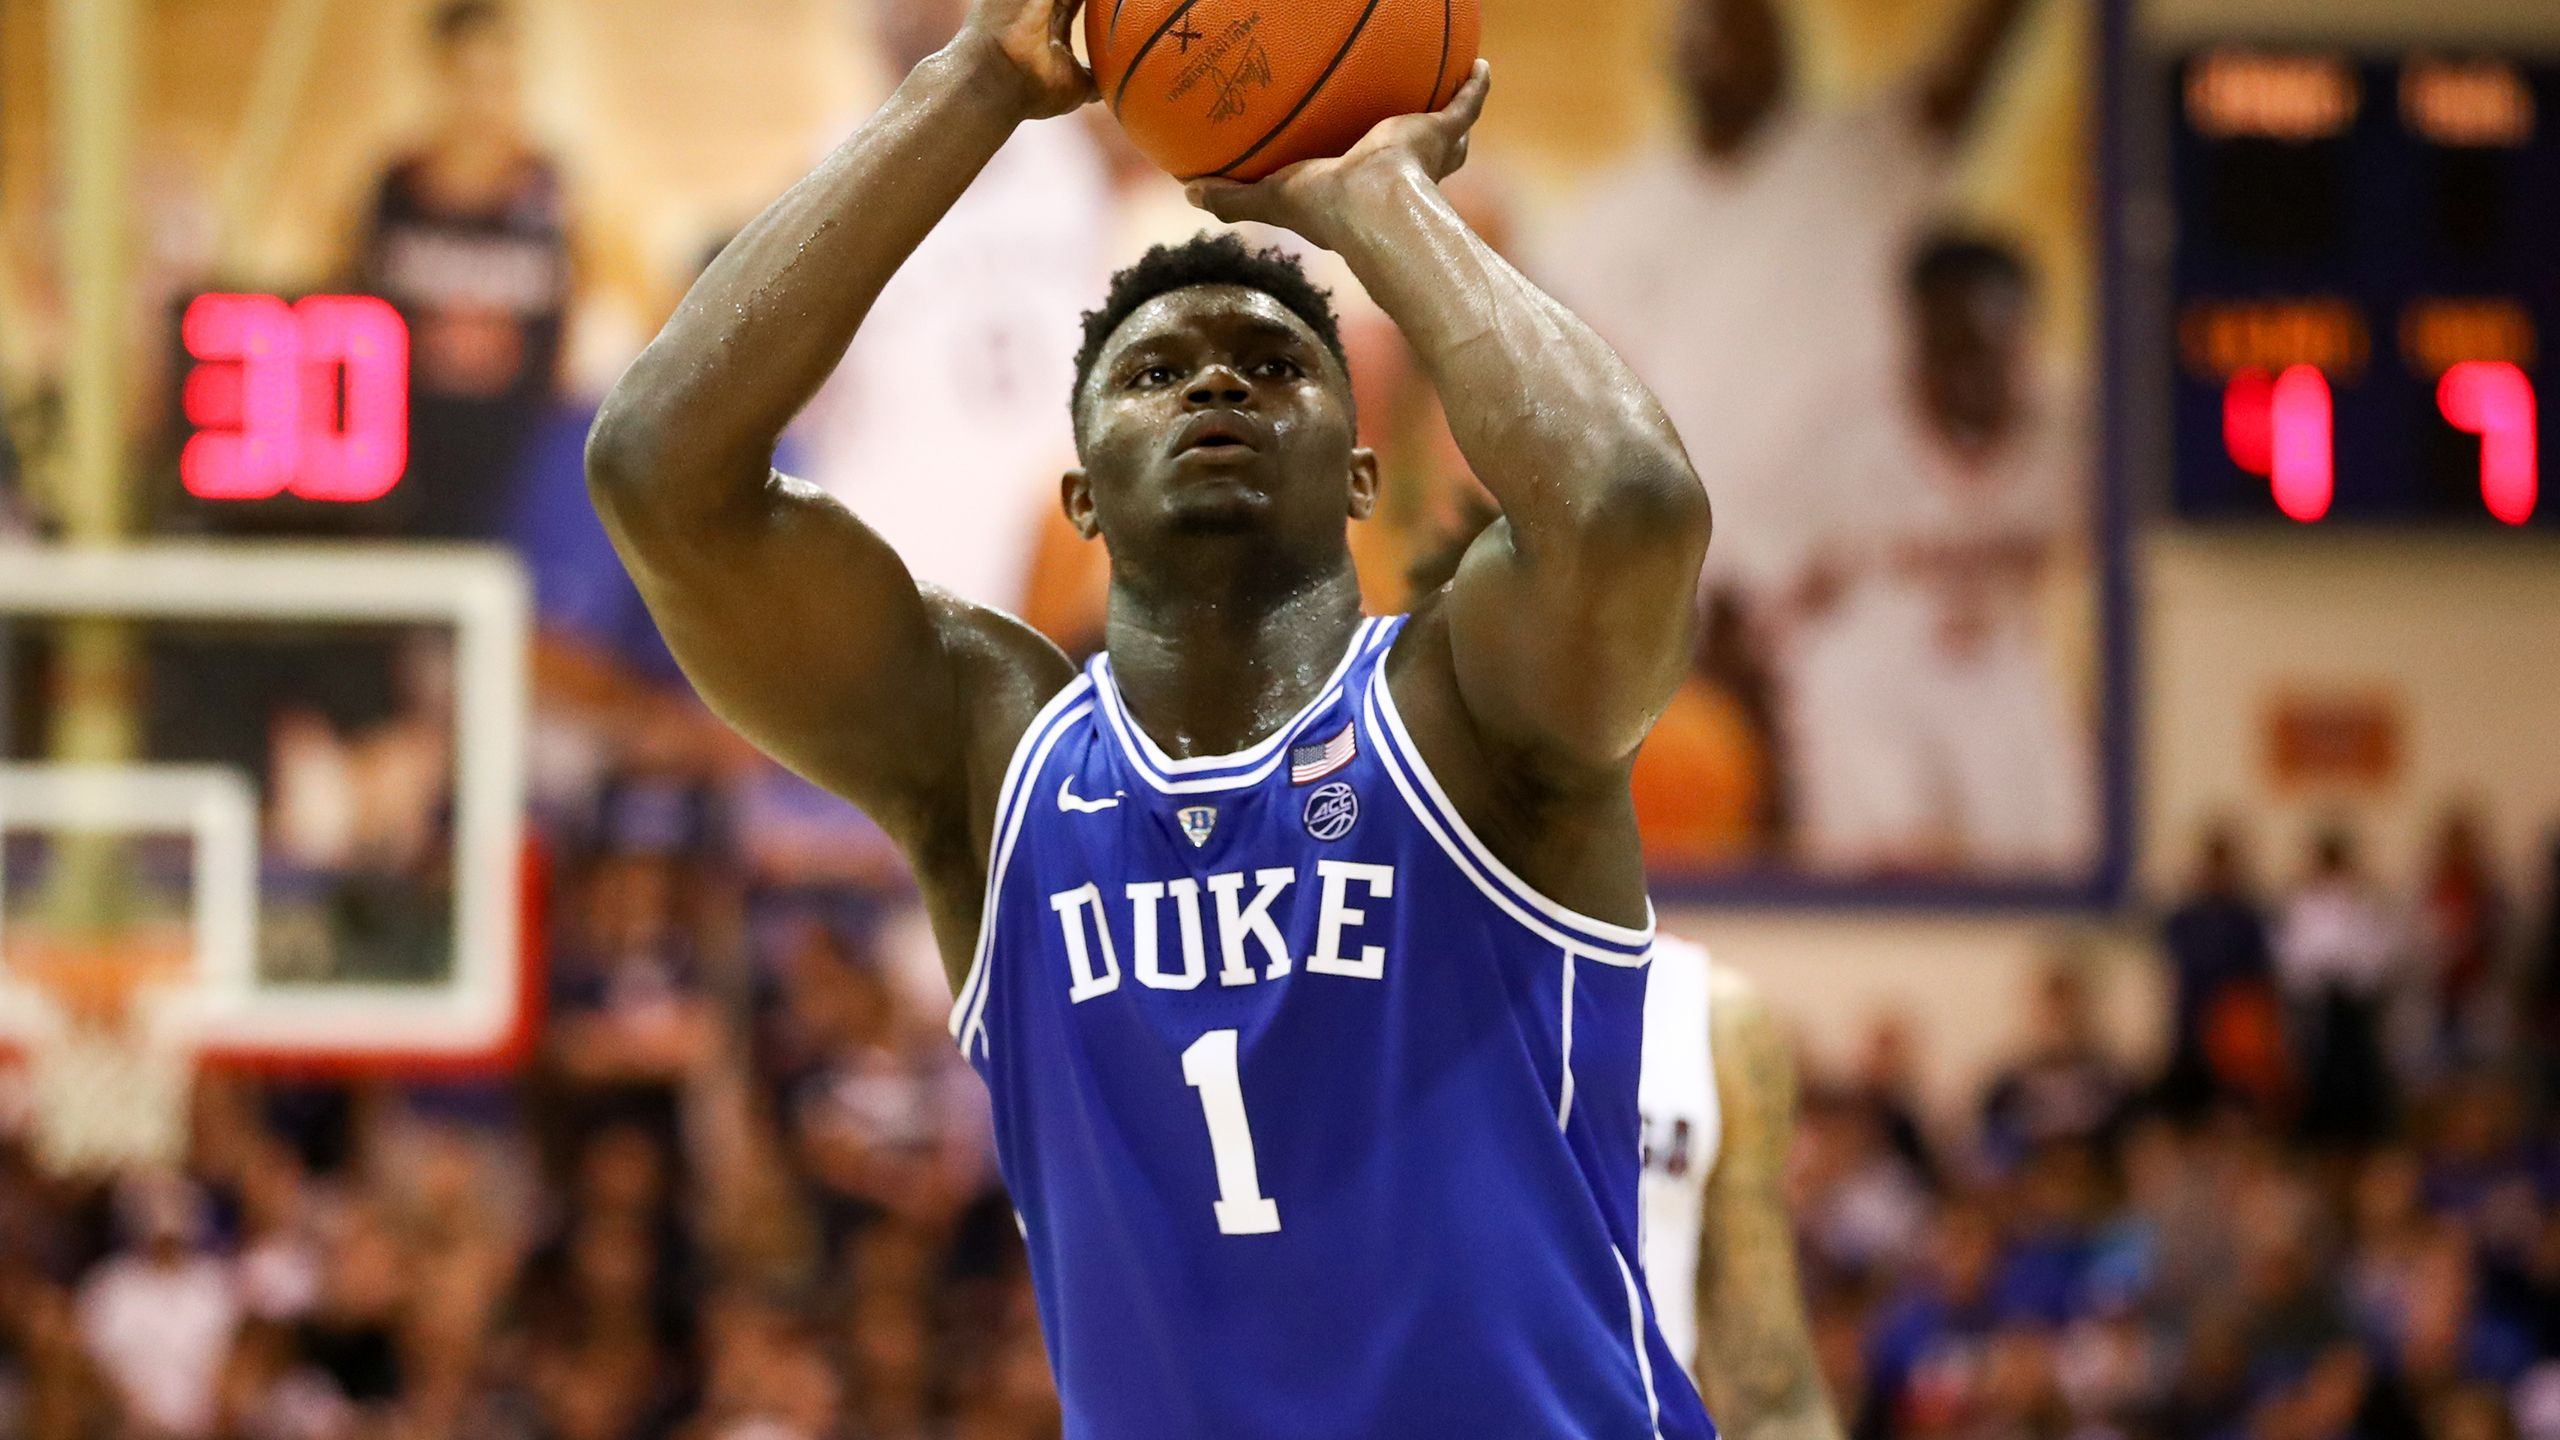 #1 Duke vs. #3 Gonzaga (Championship) (Maui Jim Maui Invitational)